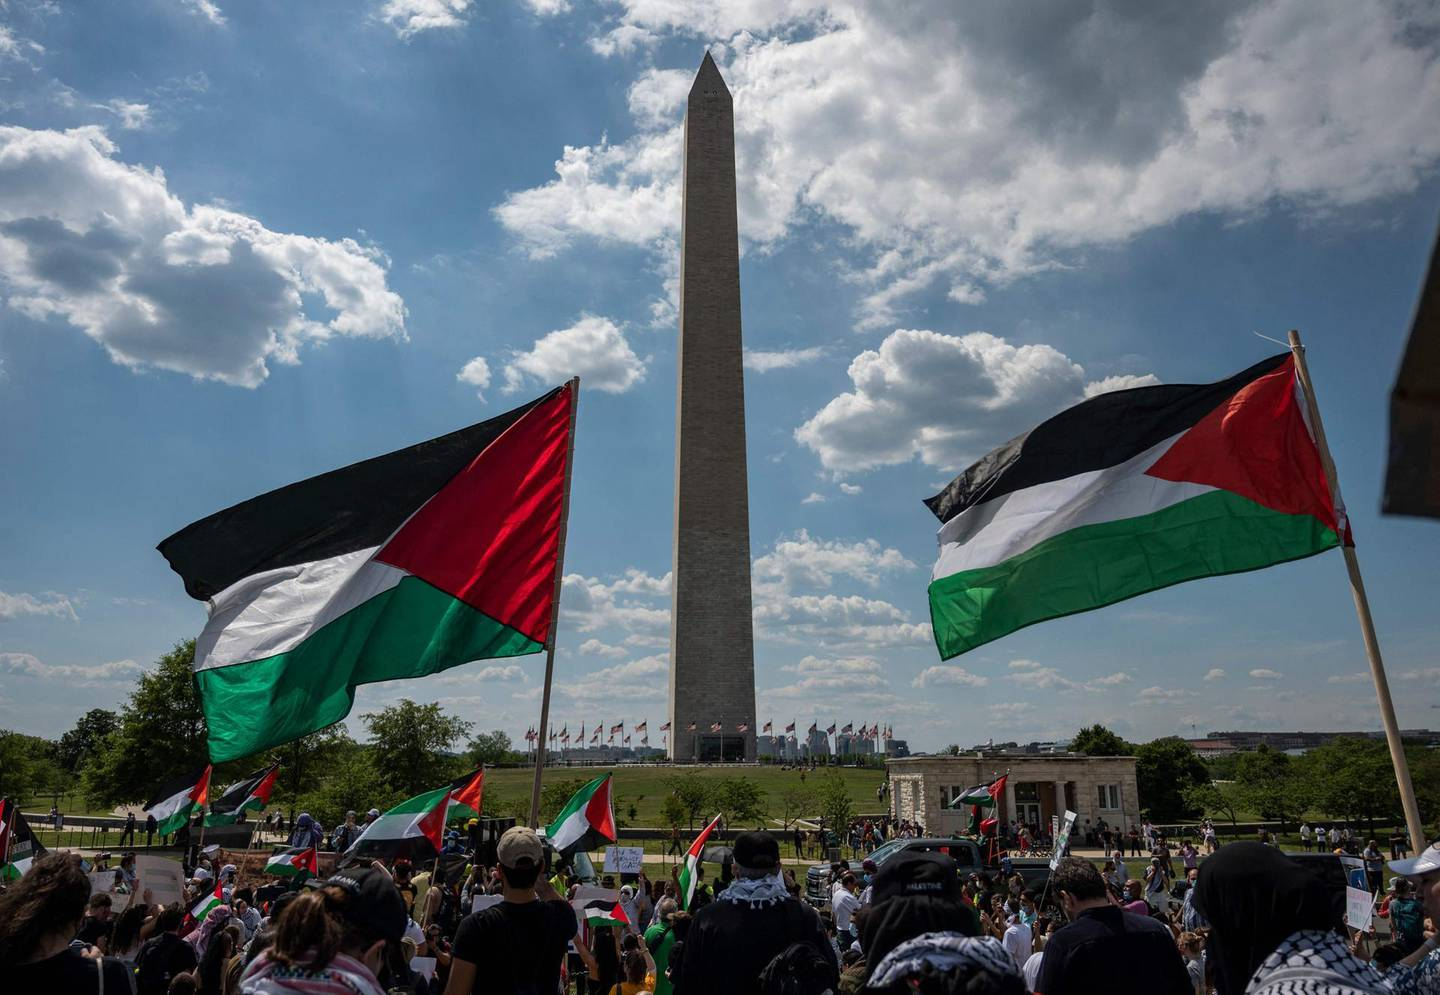 """Activists and protesters march in support of Palestine near the Washington monument in Washington, DC on May 15, 2021. US President Joe Biden, in a phone call with Israeli Prime Minister Benjamin Netanyahu, expressed his """"grave concern"""" Saturday over the flareup of violence in Israel and Gaza, the White House announced.  / AFP / ANDREW CABALLERO-REYNOLDS"""